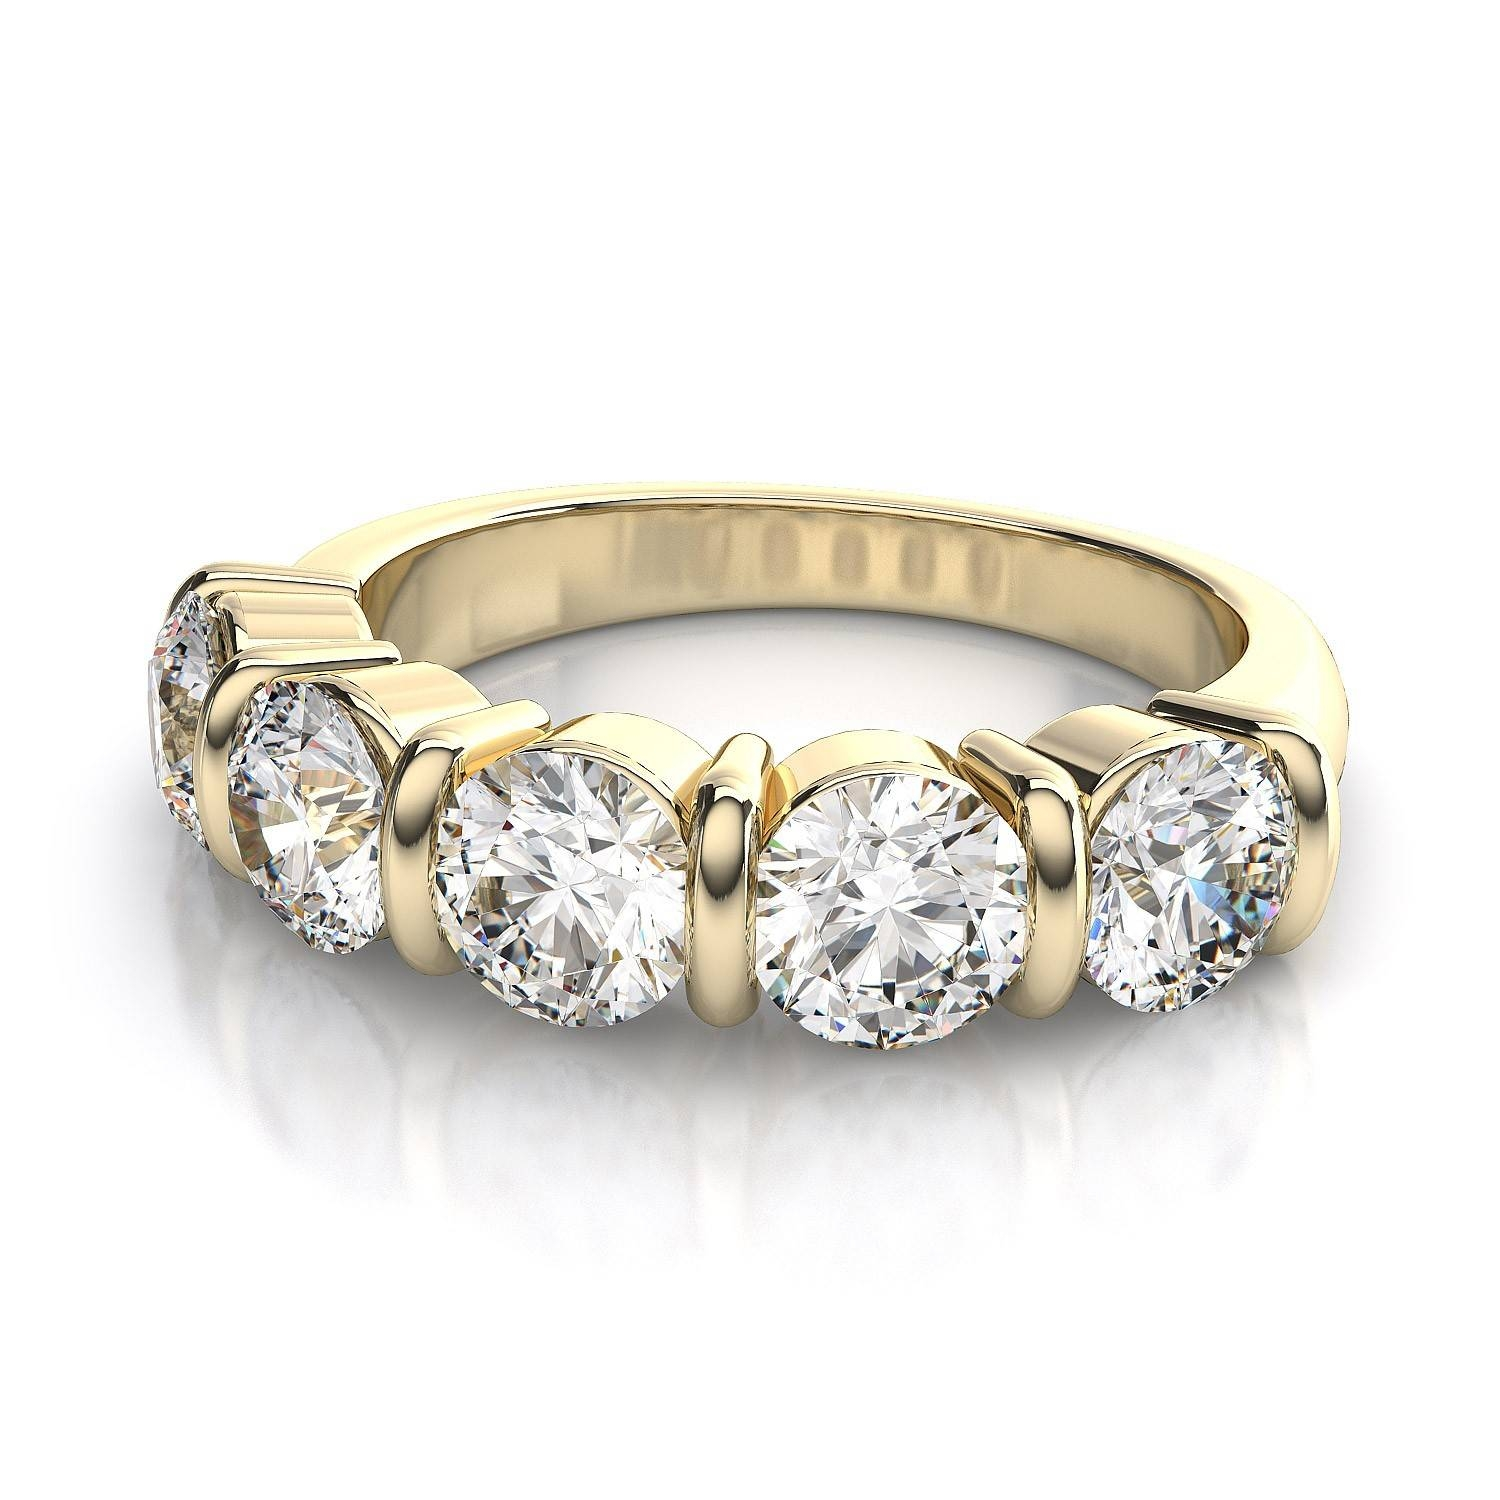 s cheap rings on top heavy com deals best affordable weddings engagement diamond chip valentine day